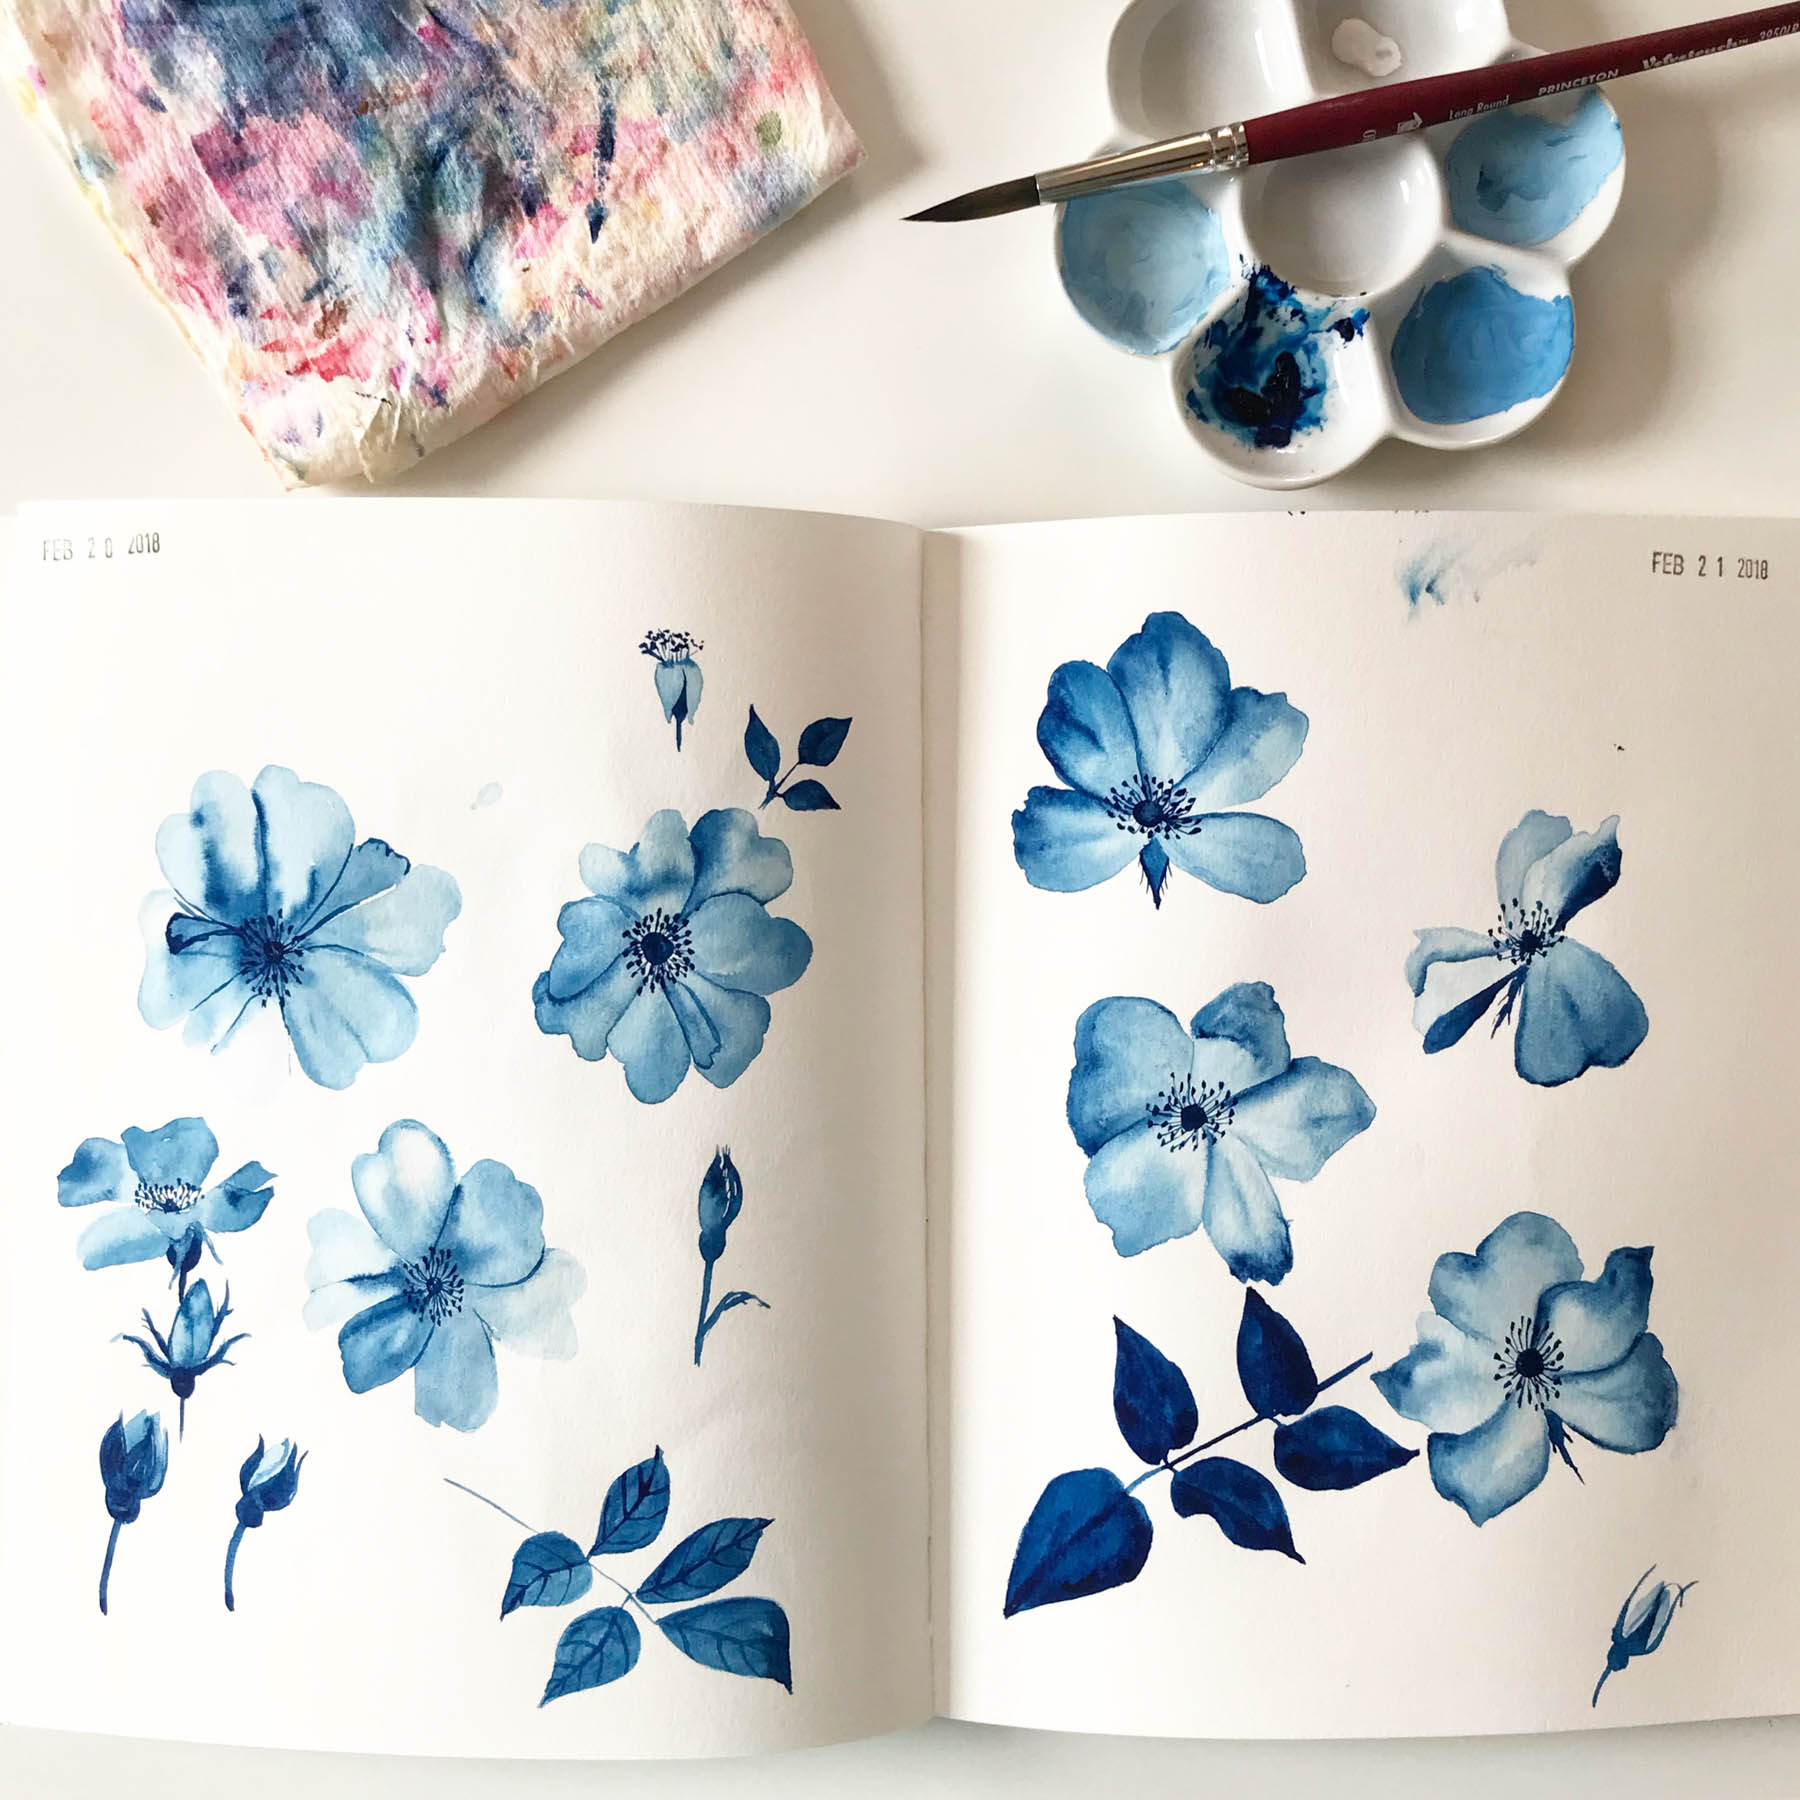 Prussian Blue Gouache Paintings in My Sketchbook Will Later Become Part of My Fabric Design